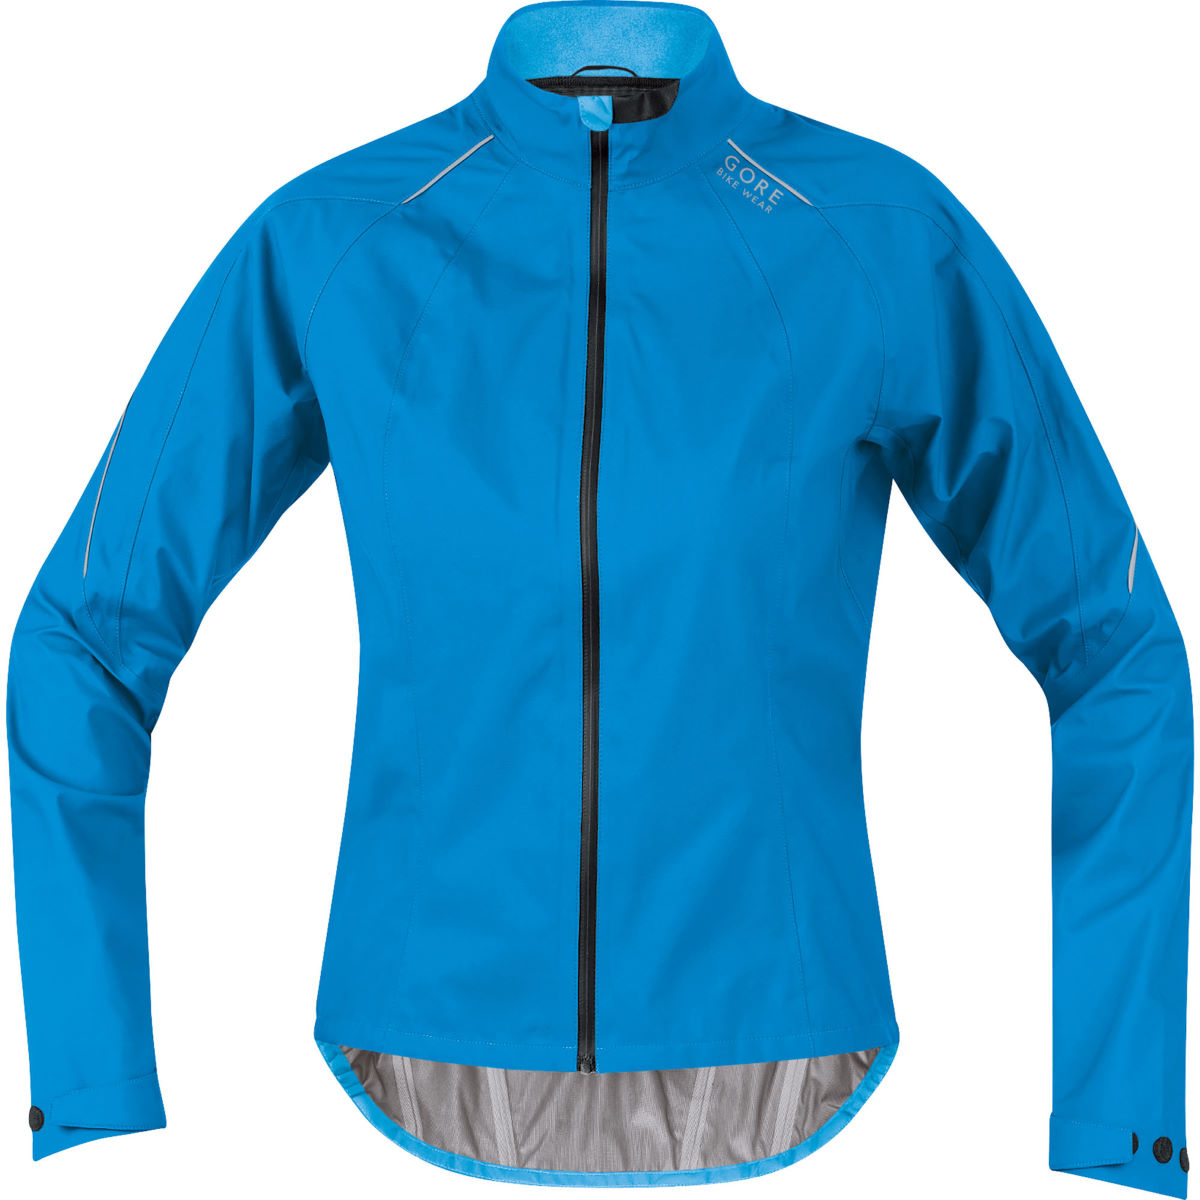 Gore Bike Wear Women's Power Gore-Tex Active Shell Jacket AW14